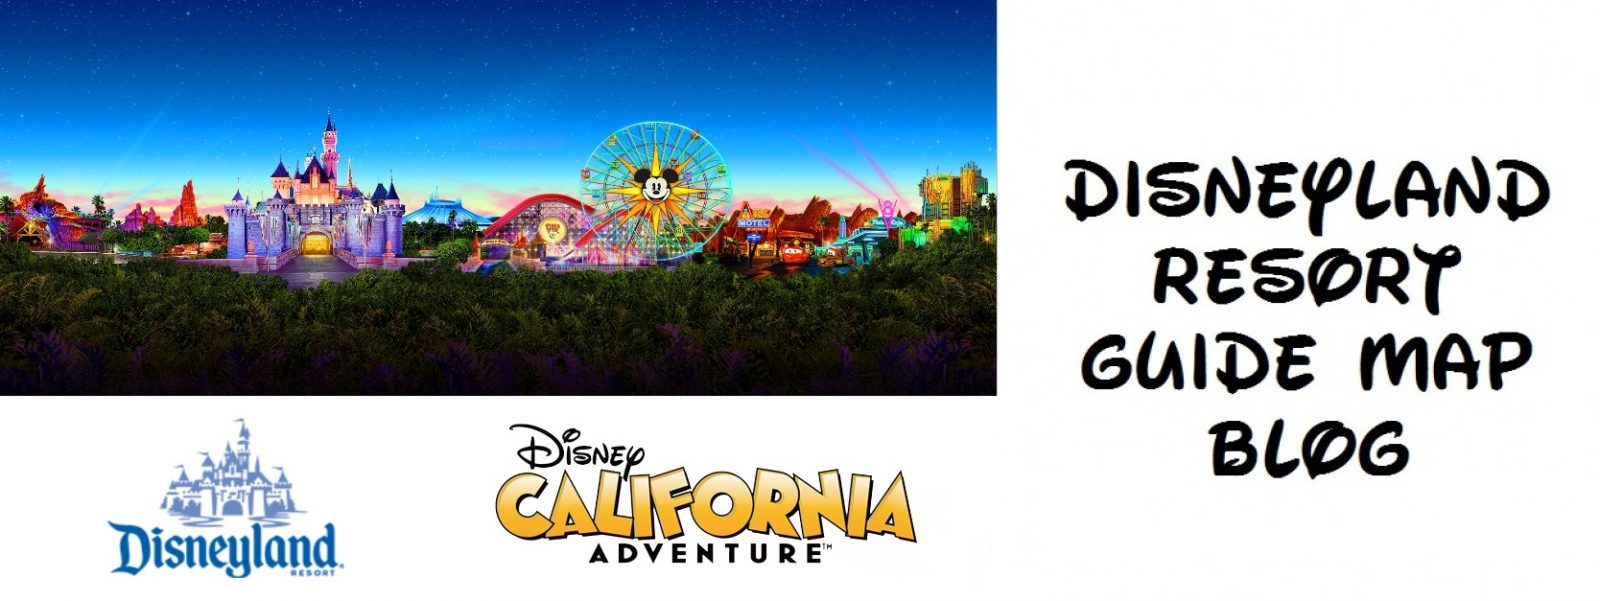 Map Of California Disney.Disneyland Resort Guide Maps Where Disneyland Resort Guide Map